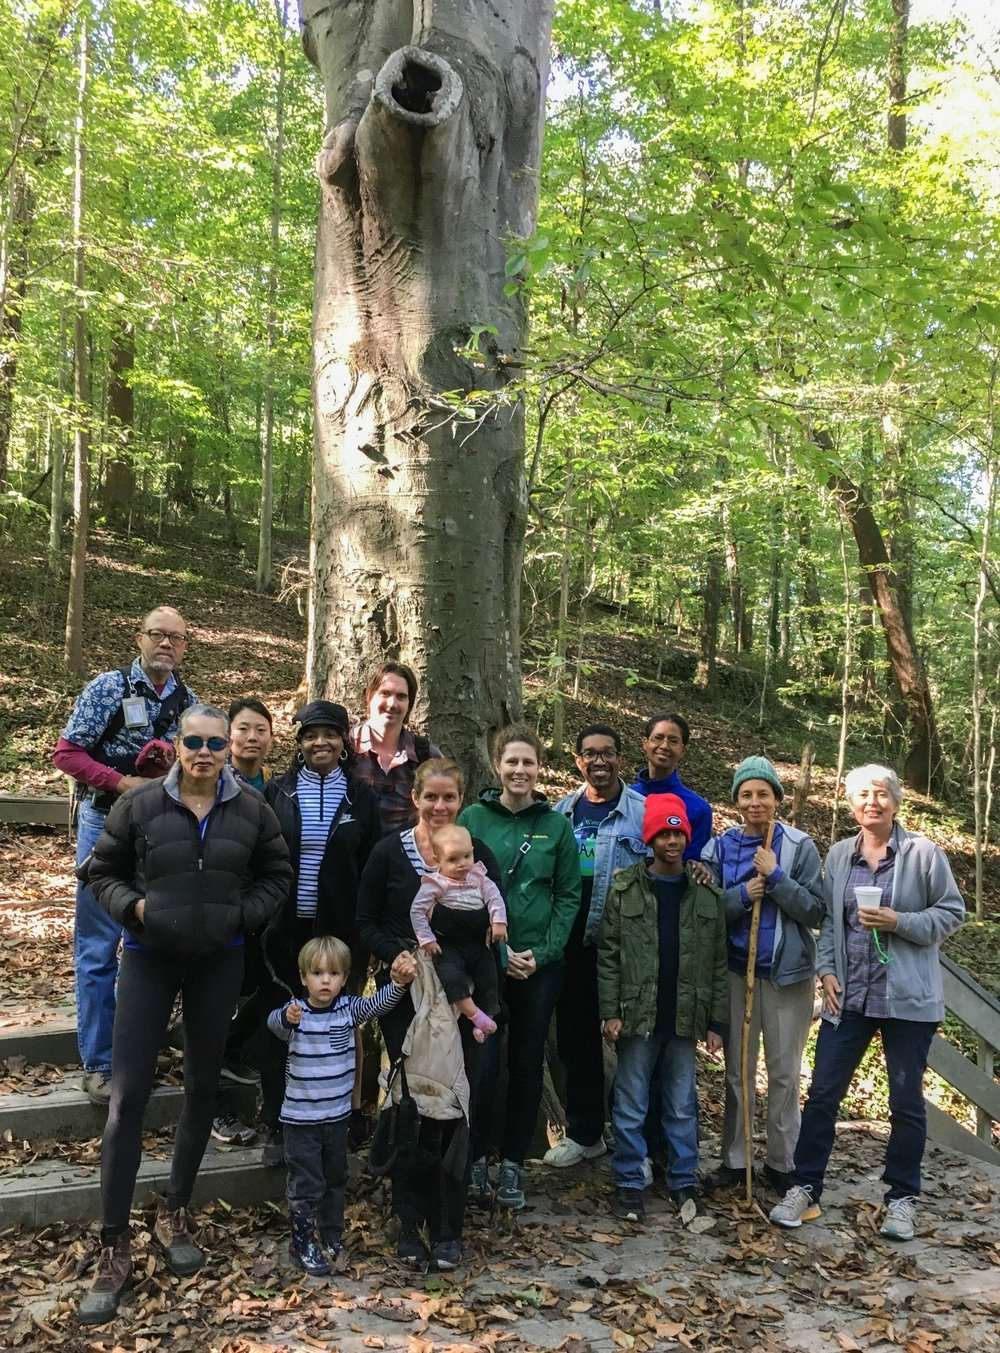 Group shot in front of ~200 year old Beech at the Outdoor Activity Center